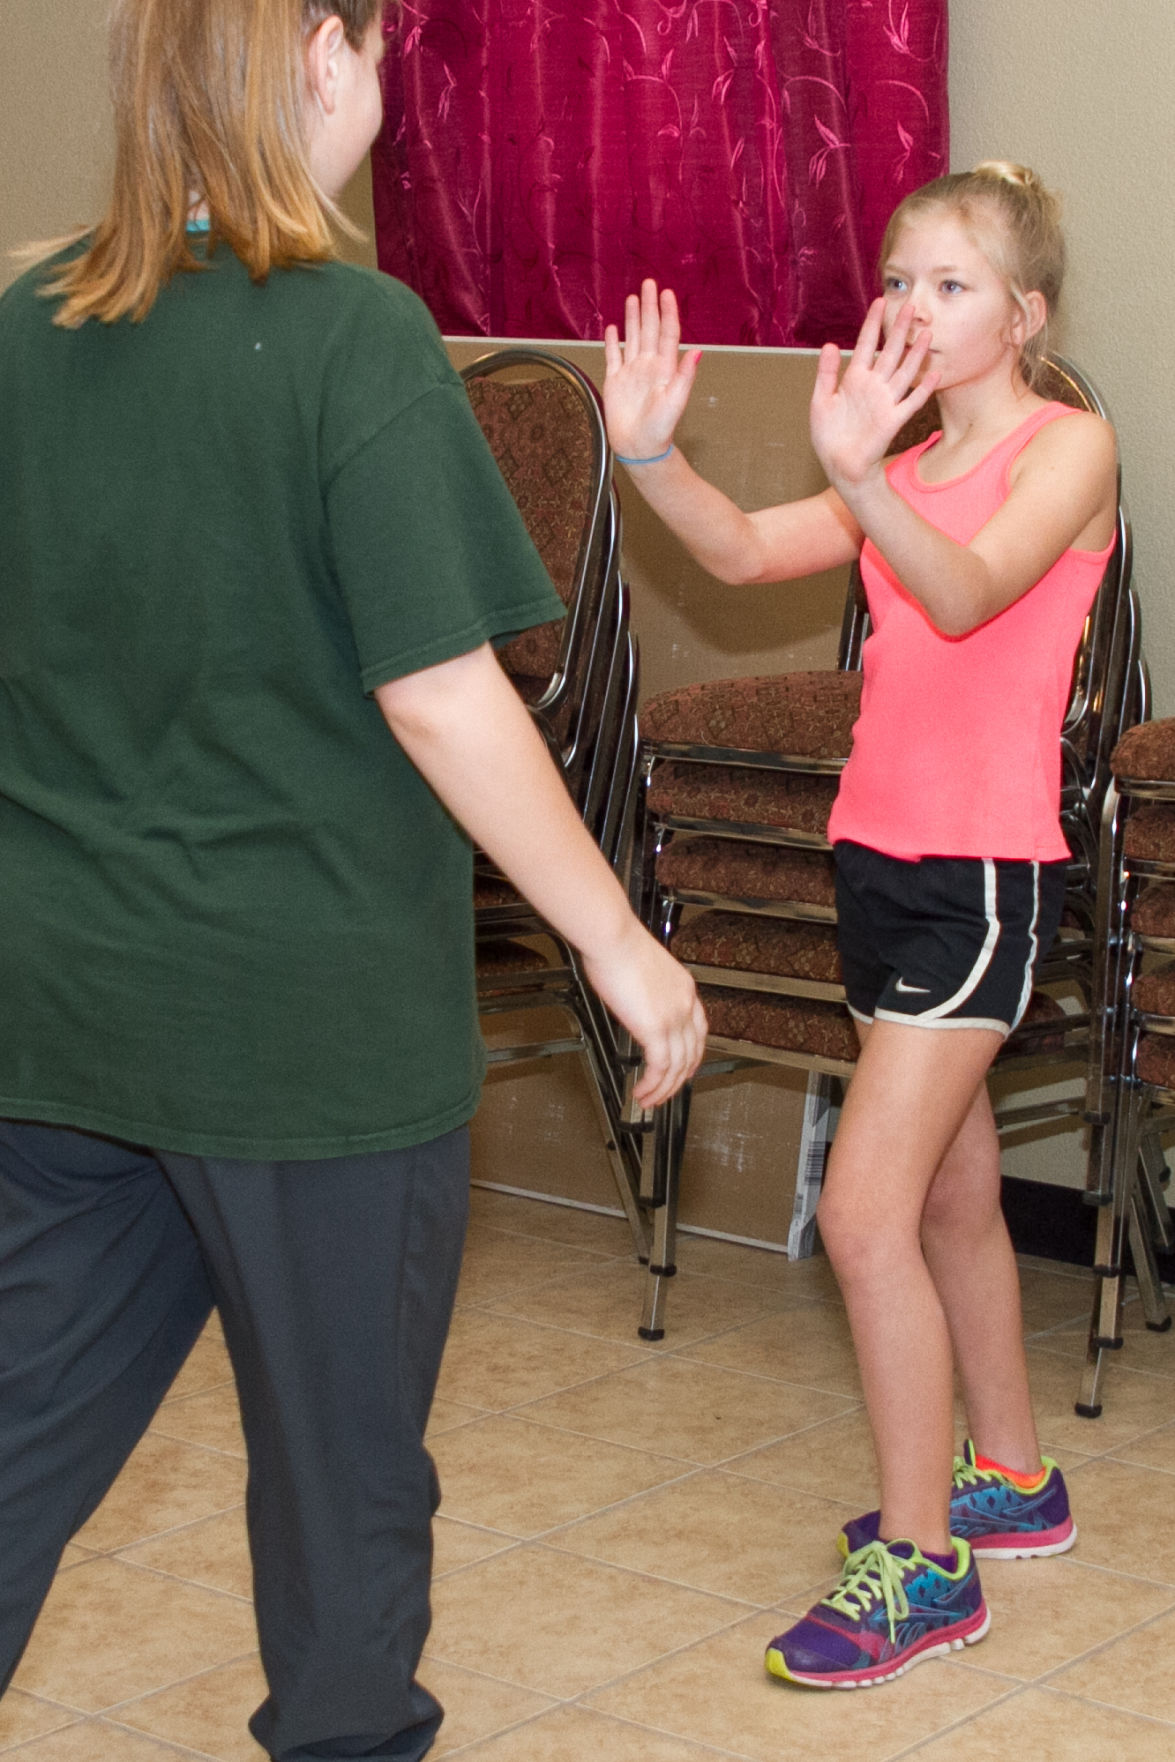 Teen Girls Learn About Self-defense